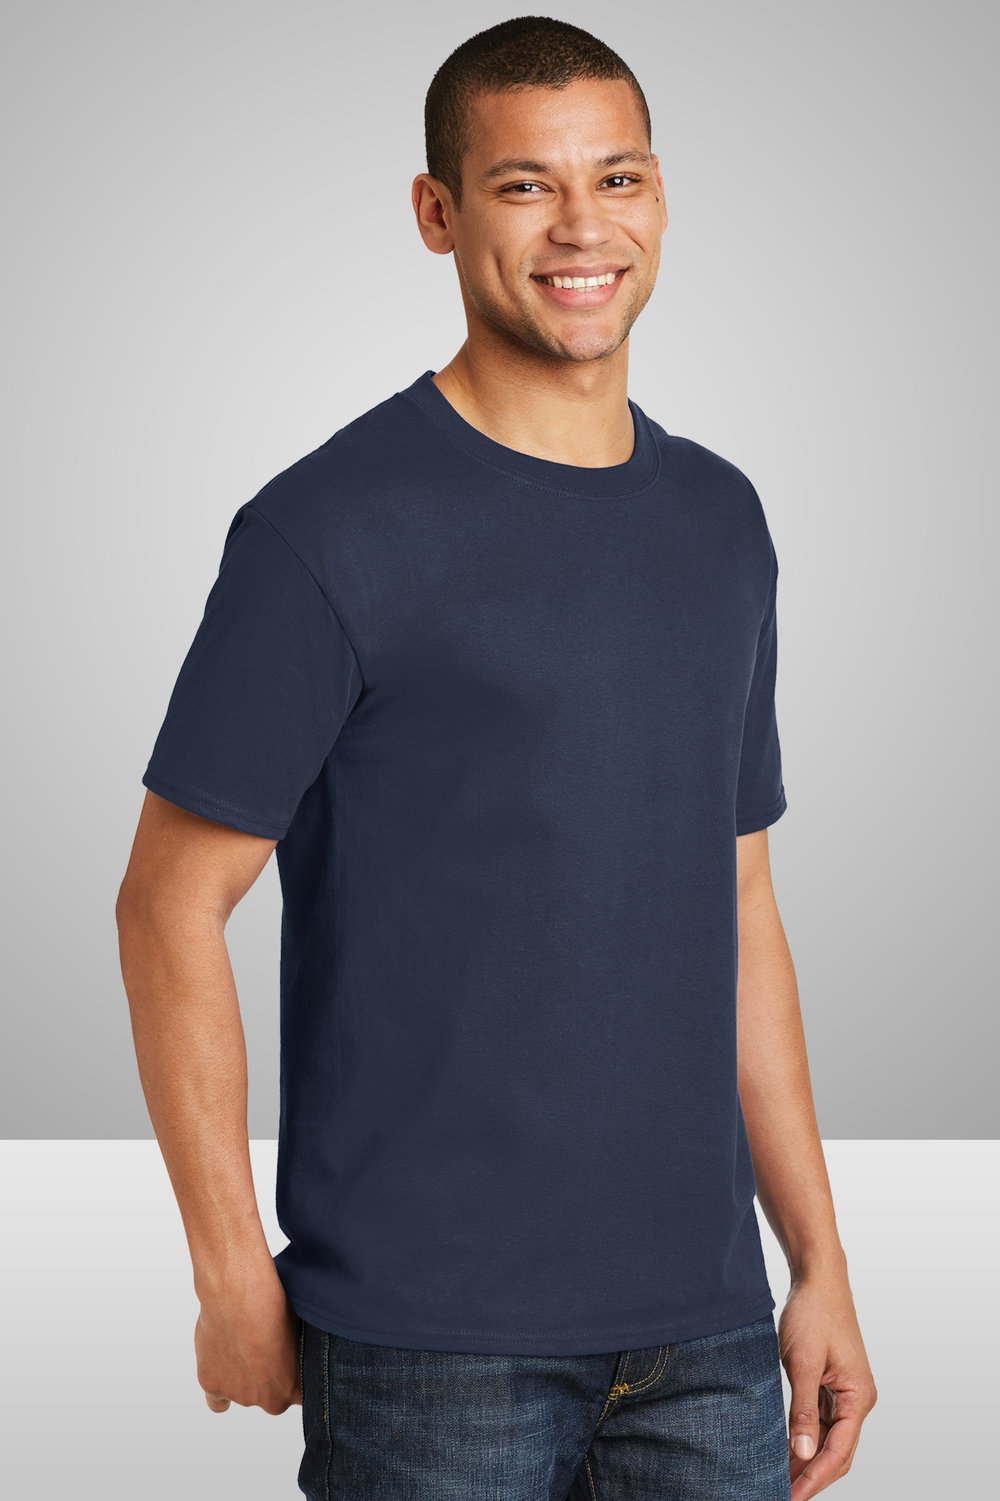 Hanes Beefy-T Shirt    $9.98 each for 25 items one color front or back